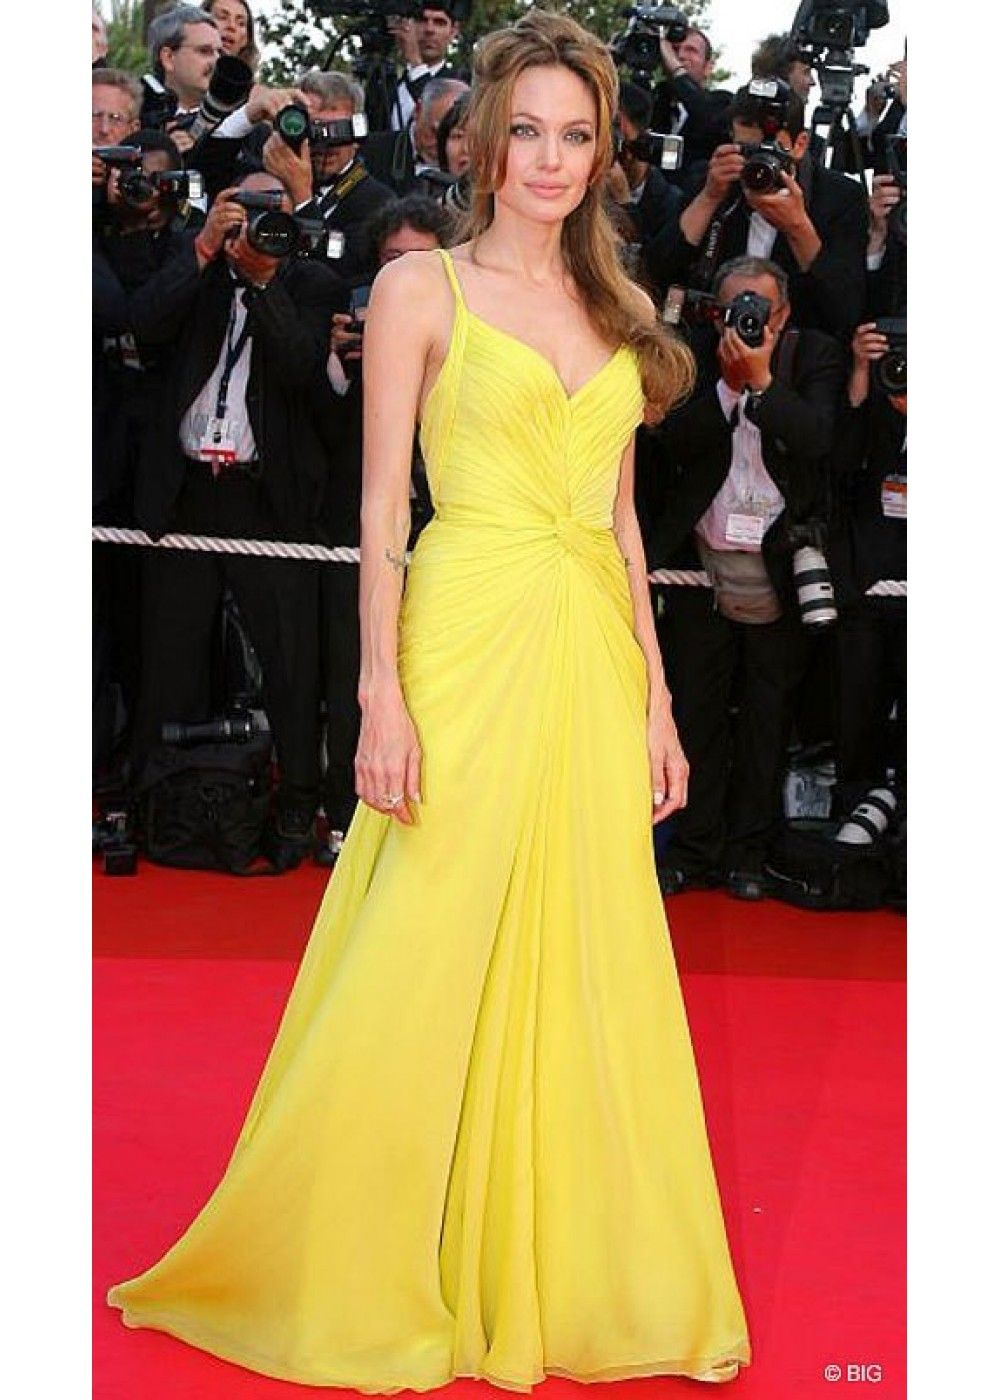 Angelina jolie yellow red carpet dress at cannes film festival